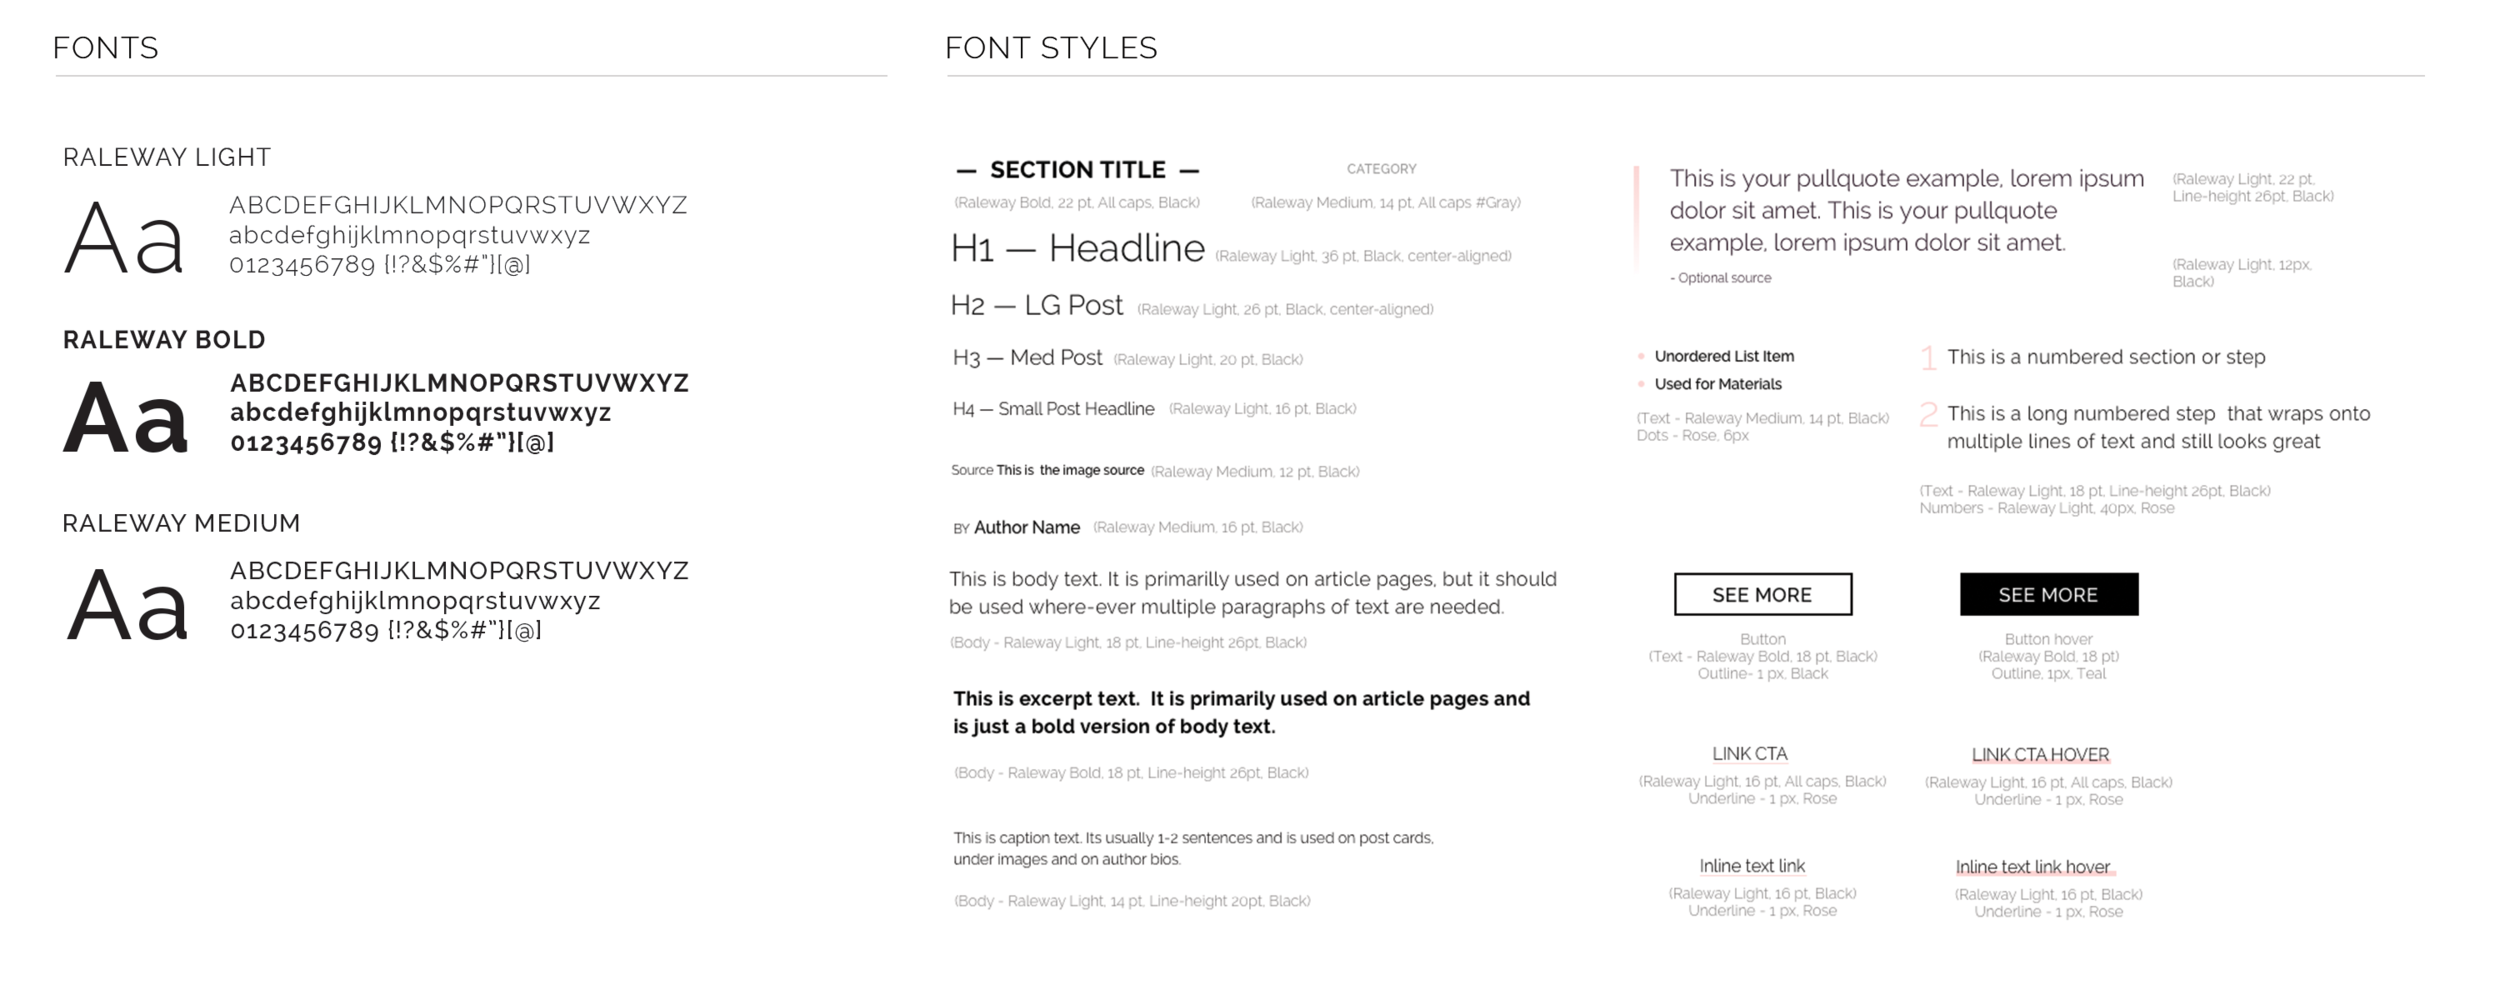 Sample of the key text styles used in the design.Fonts on the site were limited to three weights of the font Raleway, Light, Medium and Bold.